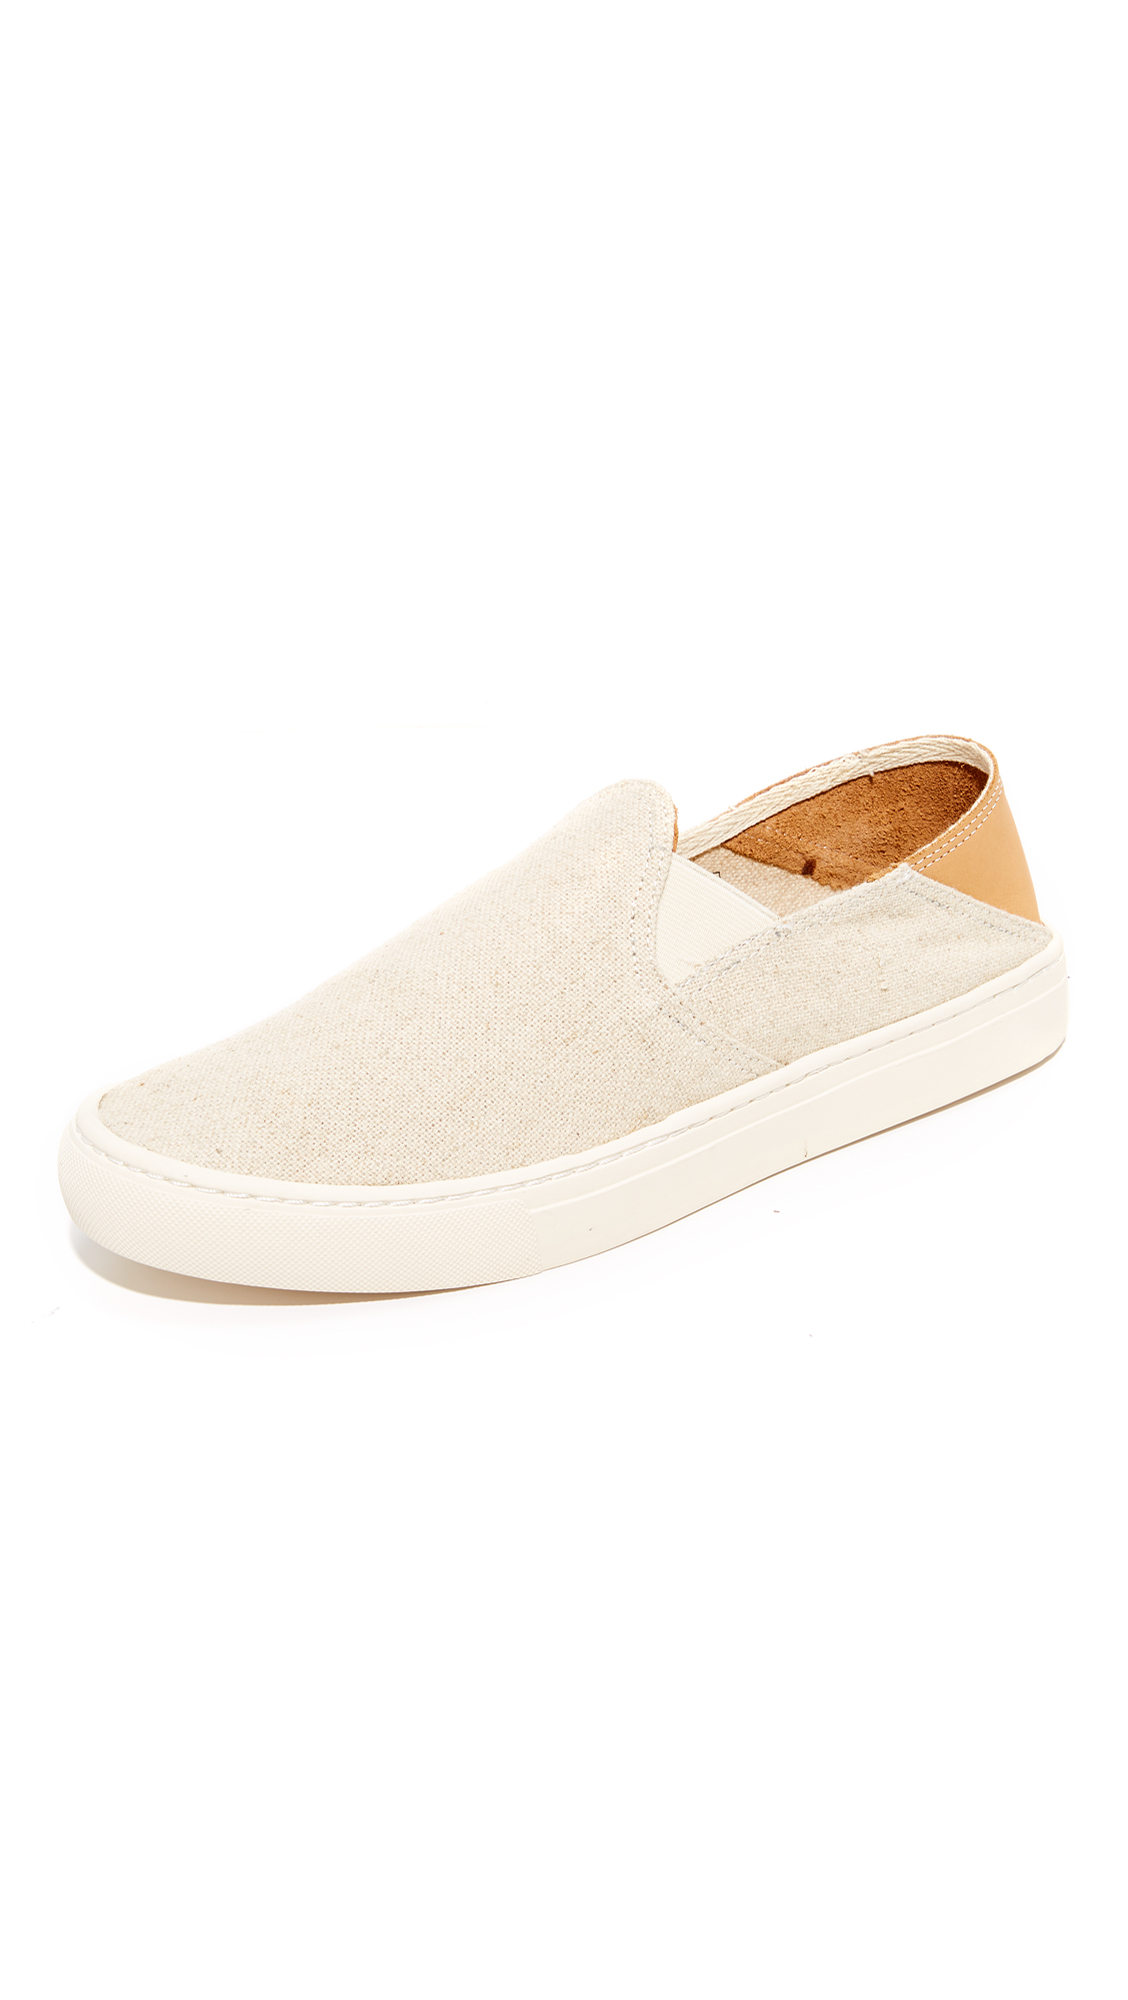 Soludos Convertible Slip-On Sneaker Official Site Cheap Price Outlet Footaction BnX6NZX1t